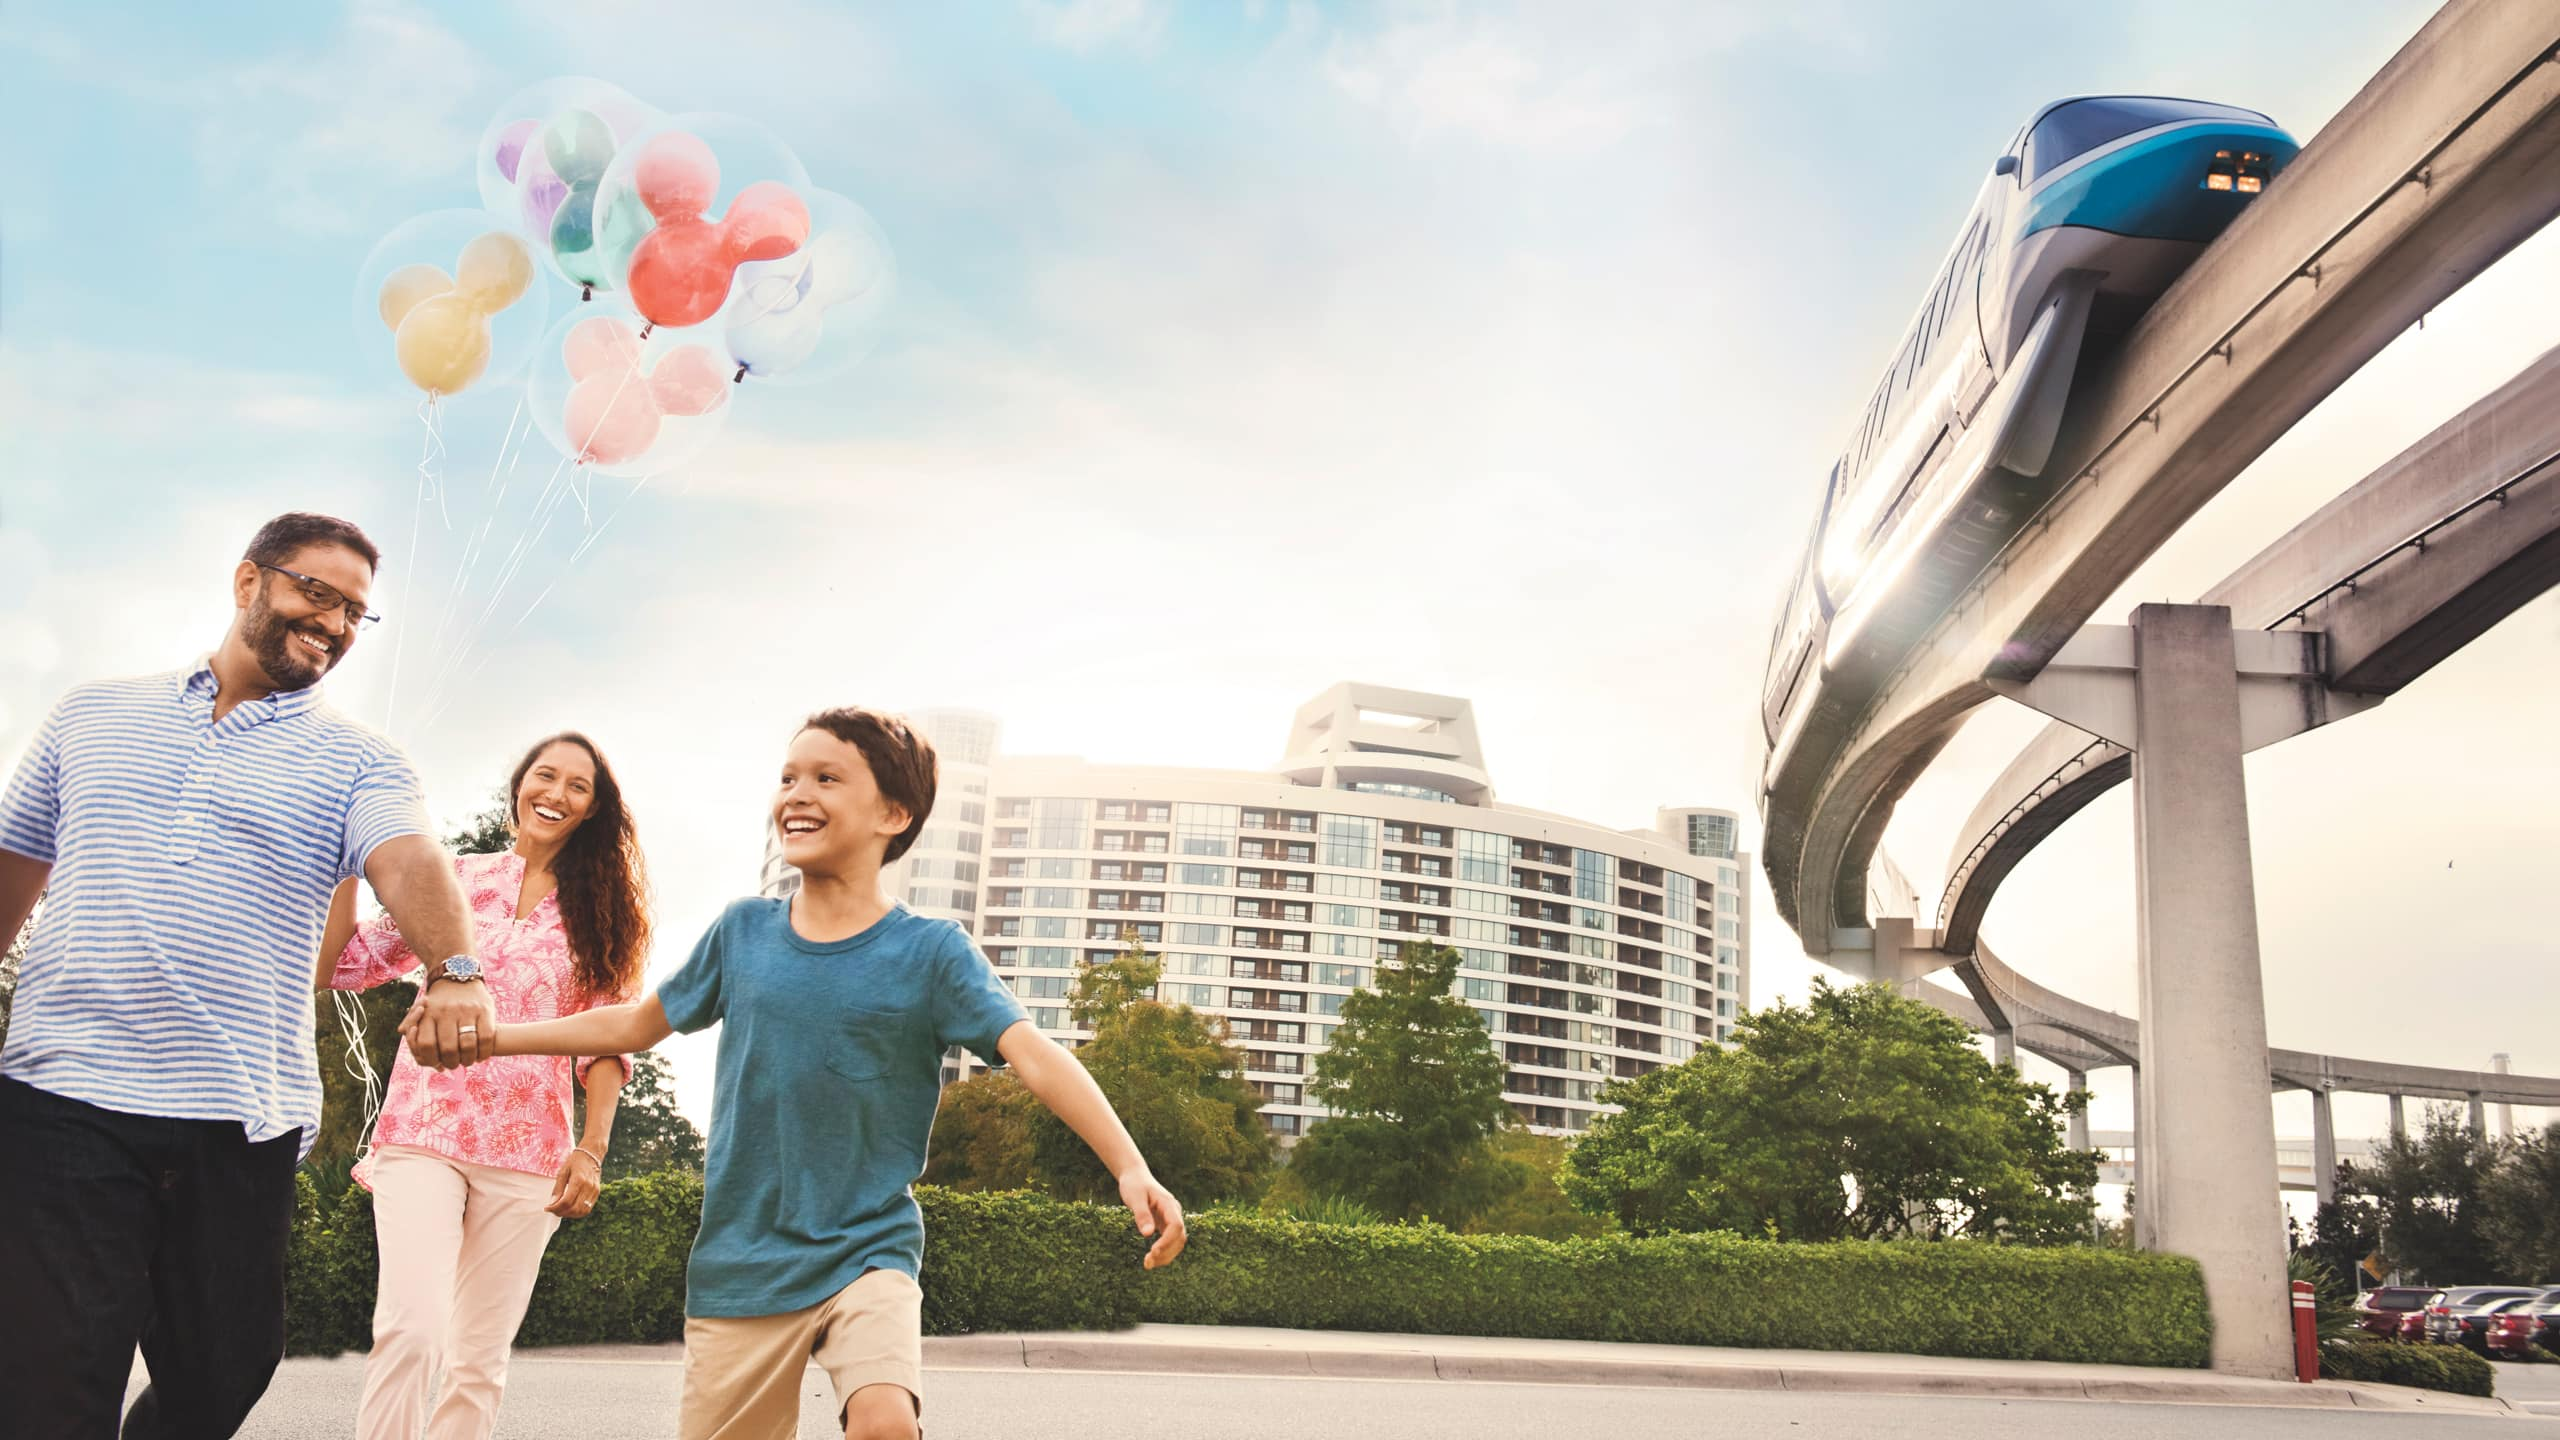 A man, woman and boy hold hands and carry Mickey Mouse balloons near a multi story hotel and a monorail